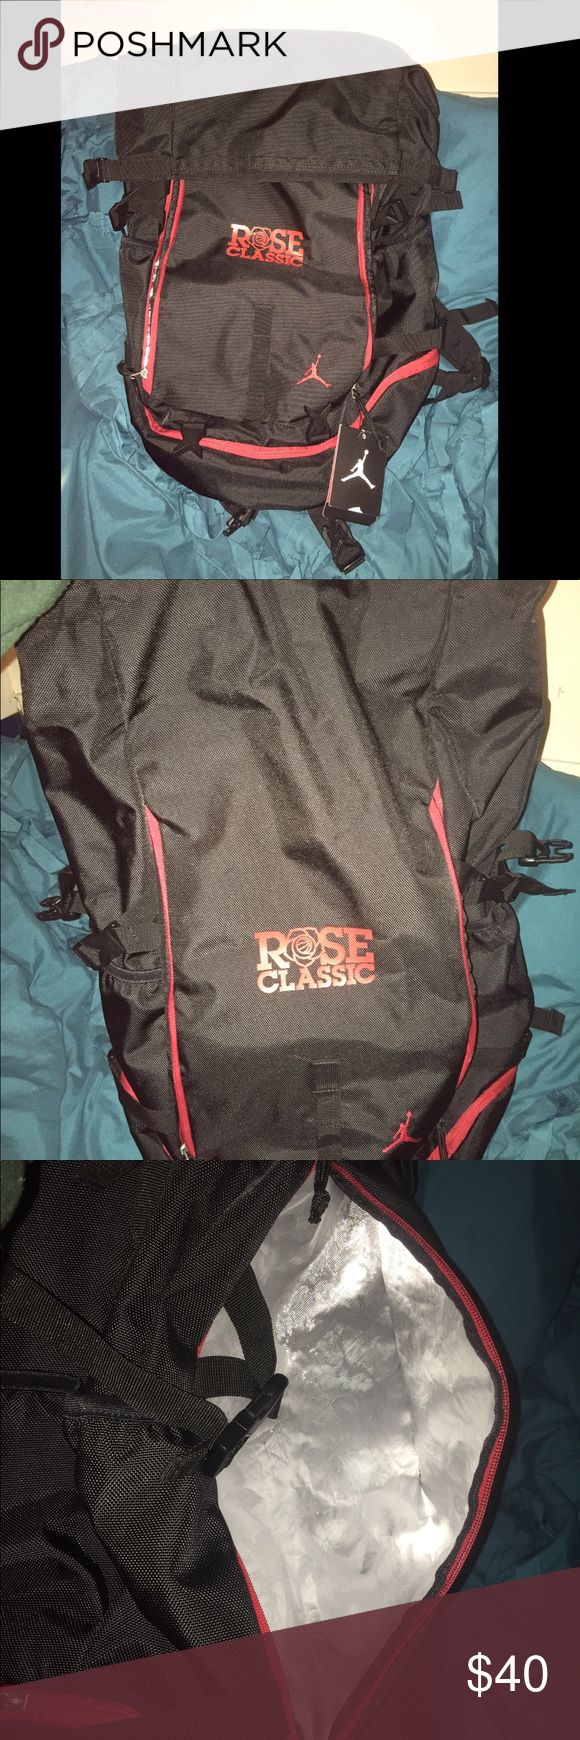 """JORDAN """"Rose Classic"""" Back Pack NWT JORDAN """"Rose Classic"""" Book Bag.. with insulated compartment to keep drinks cold.. opens and expands for a lot of room!! NWT Jordan Bags Backpacks"""